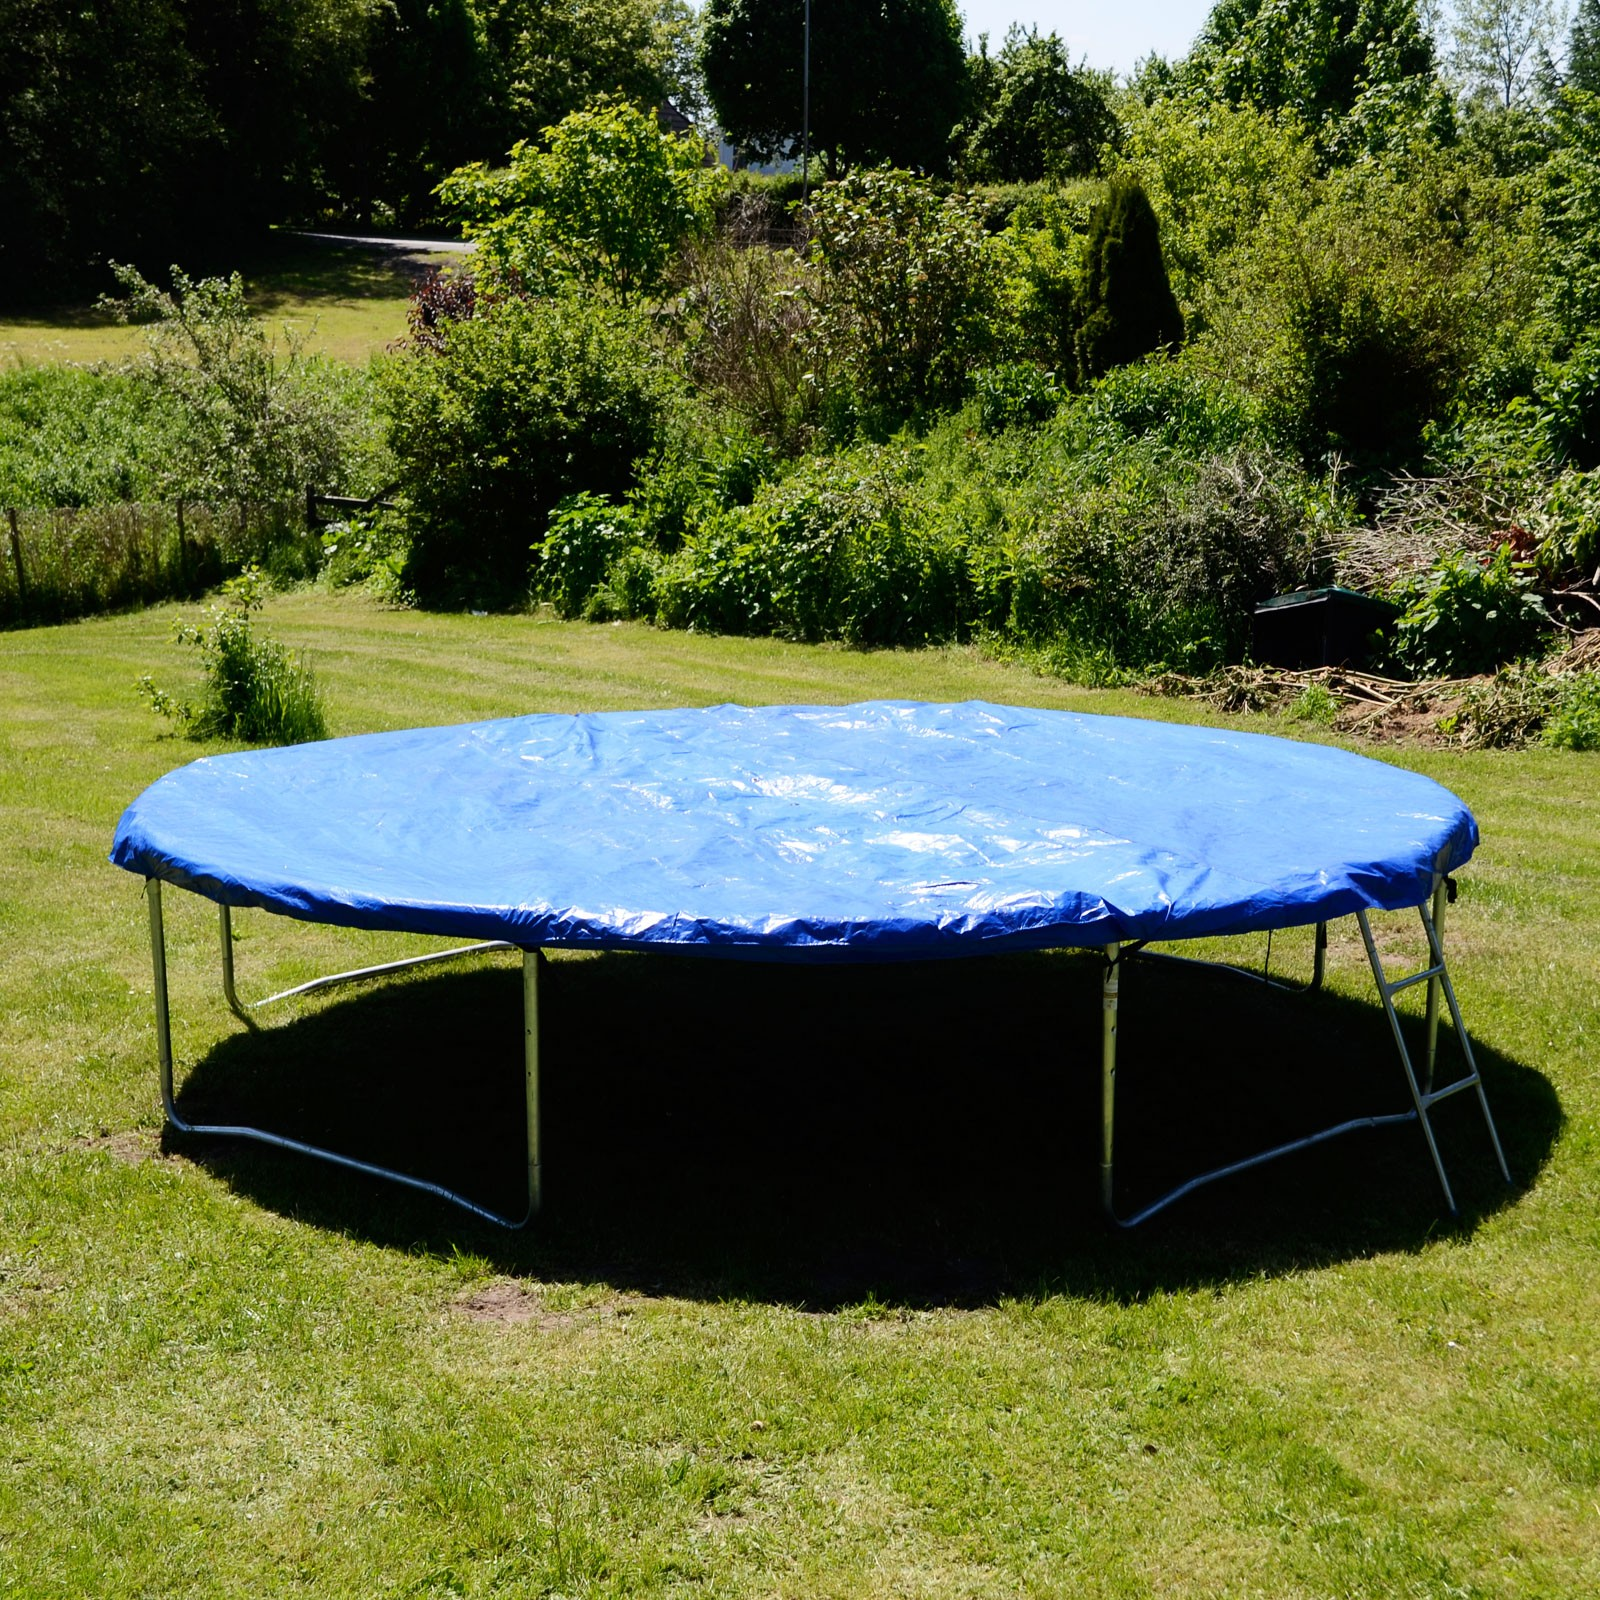 sport tiedje garten trampolin 490 cm inkl sicherheitsnetz leiter sport tiedje. Black Bedroom Furniture Sets. Home Design Ideas